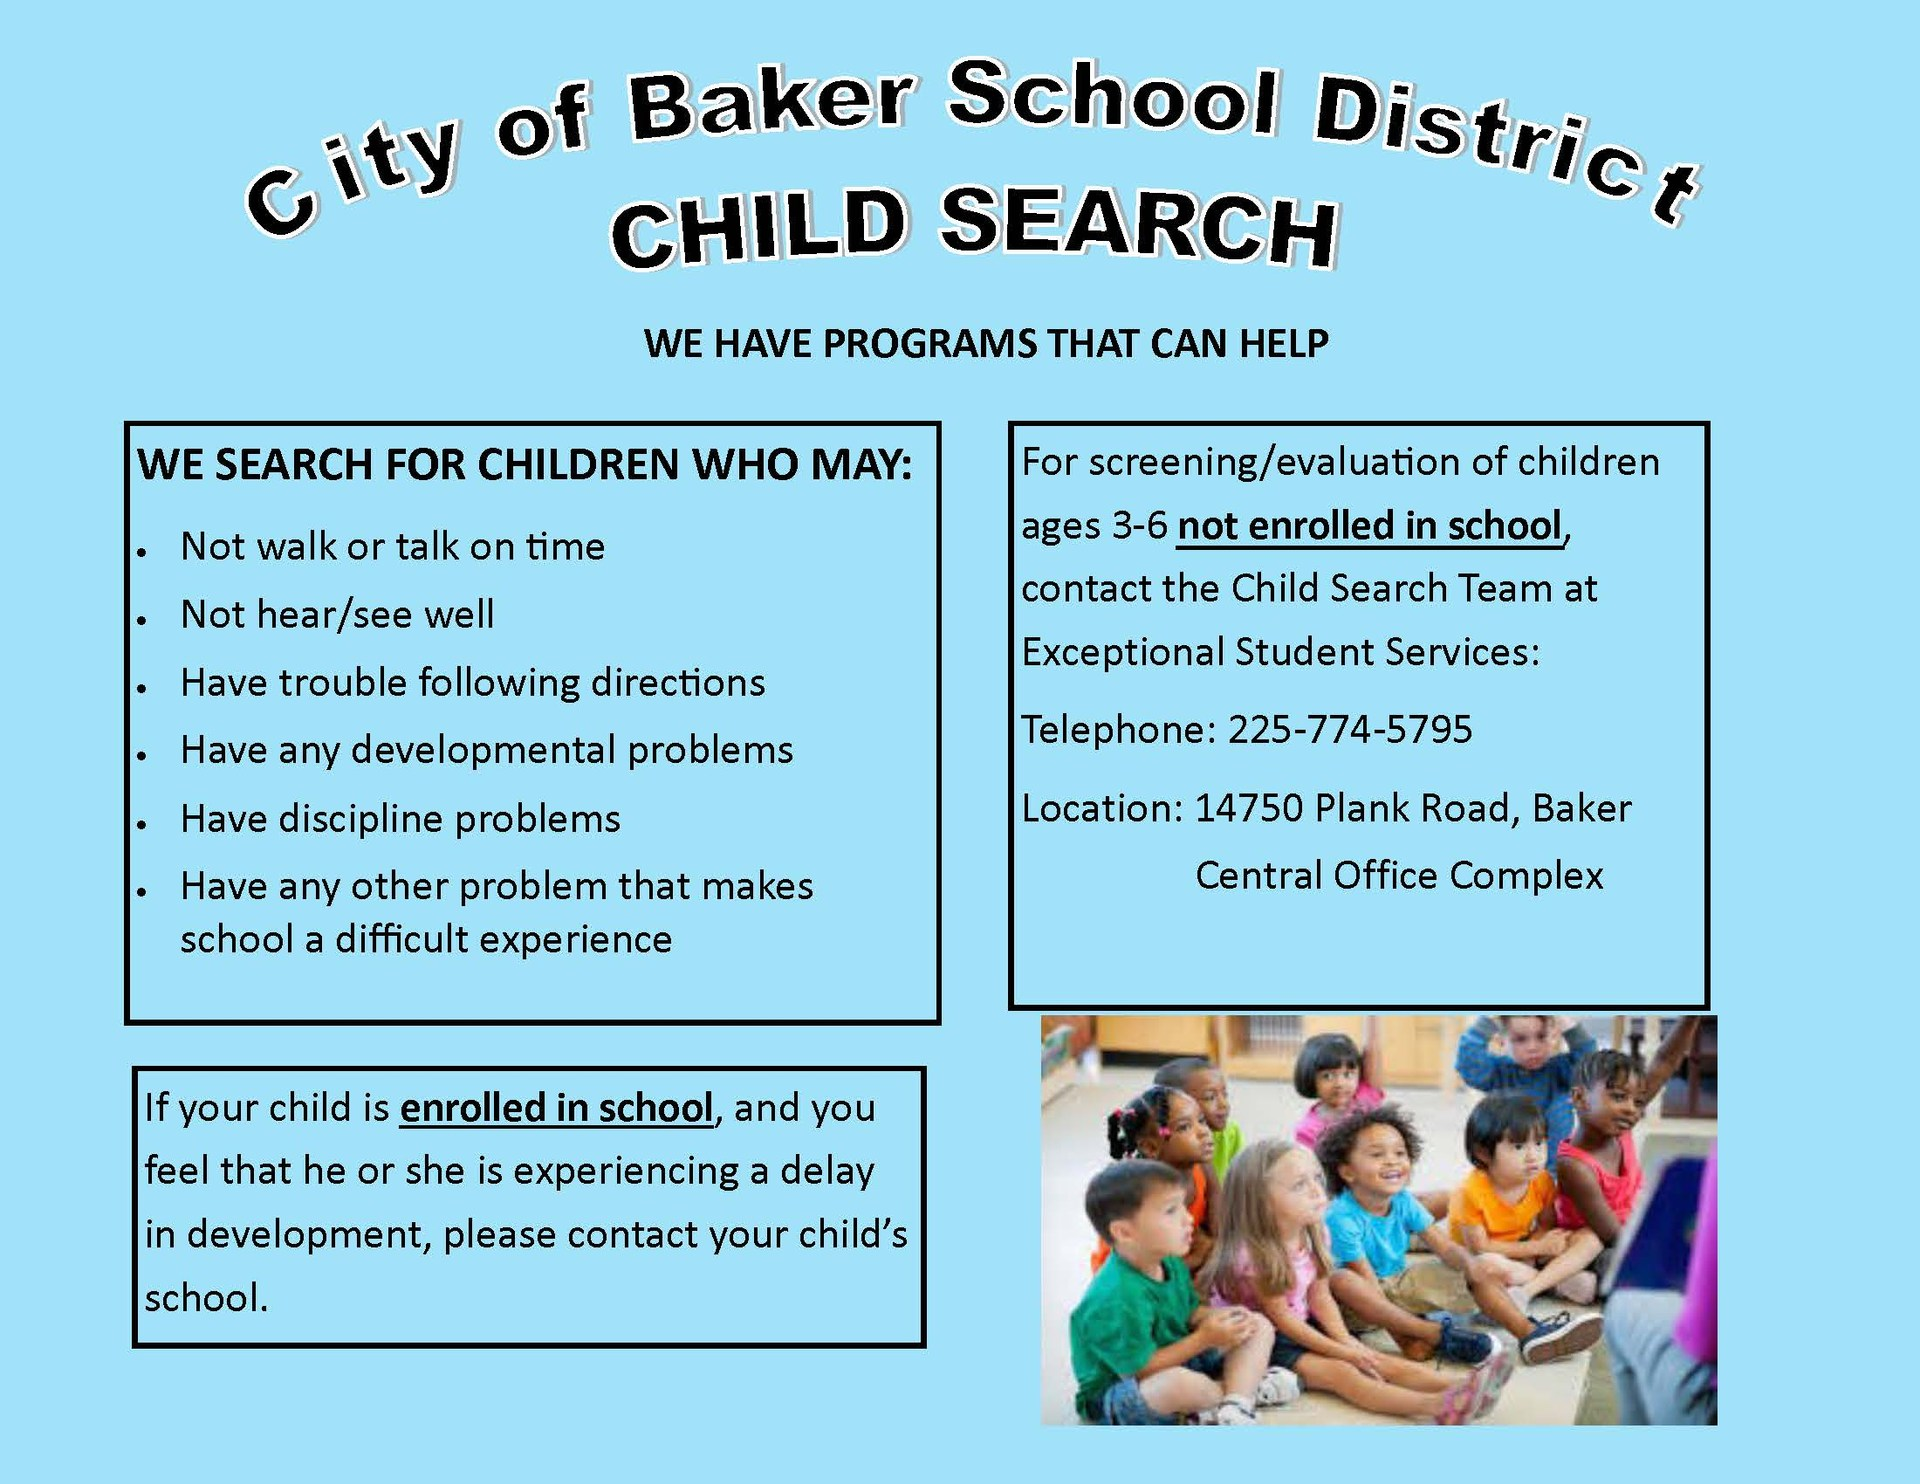 Graphic with information about Child Search in Baker Schools